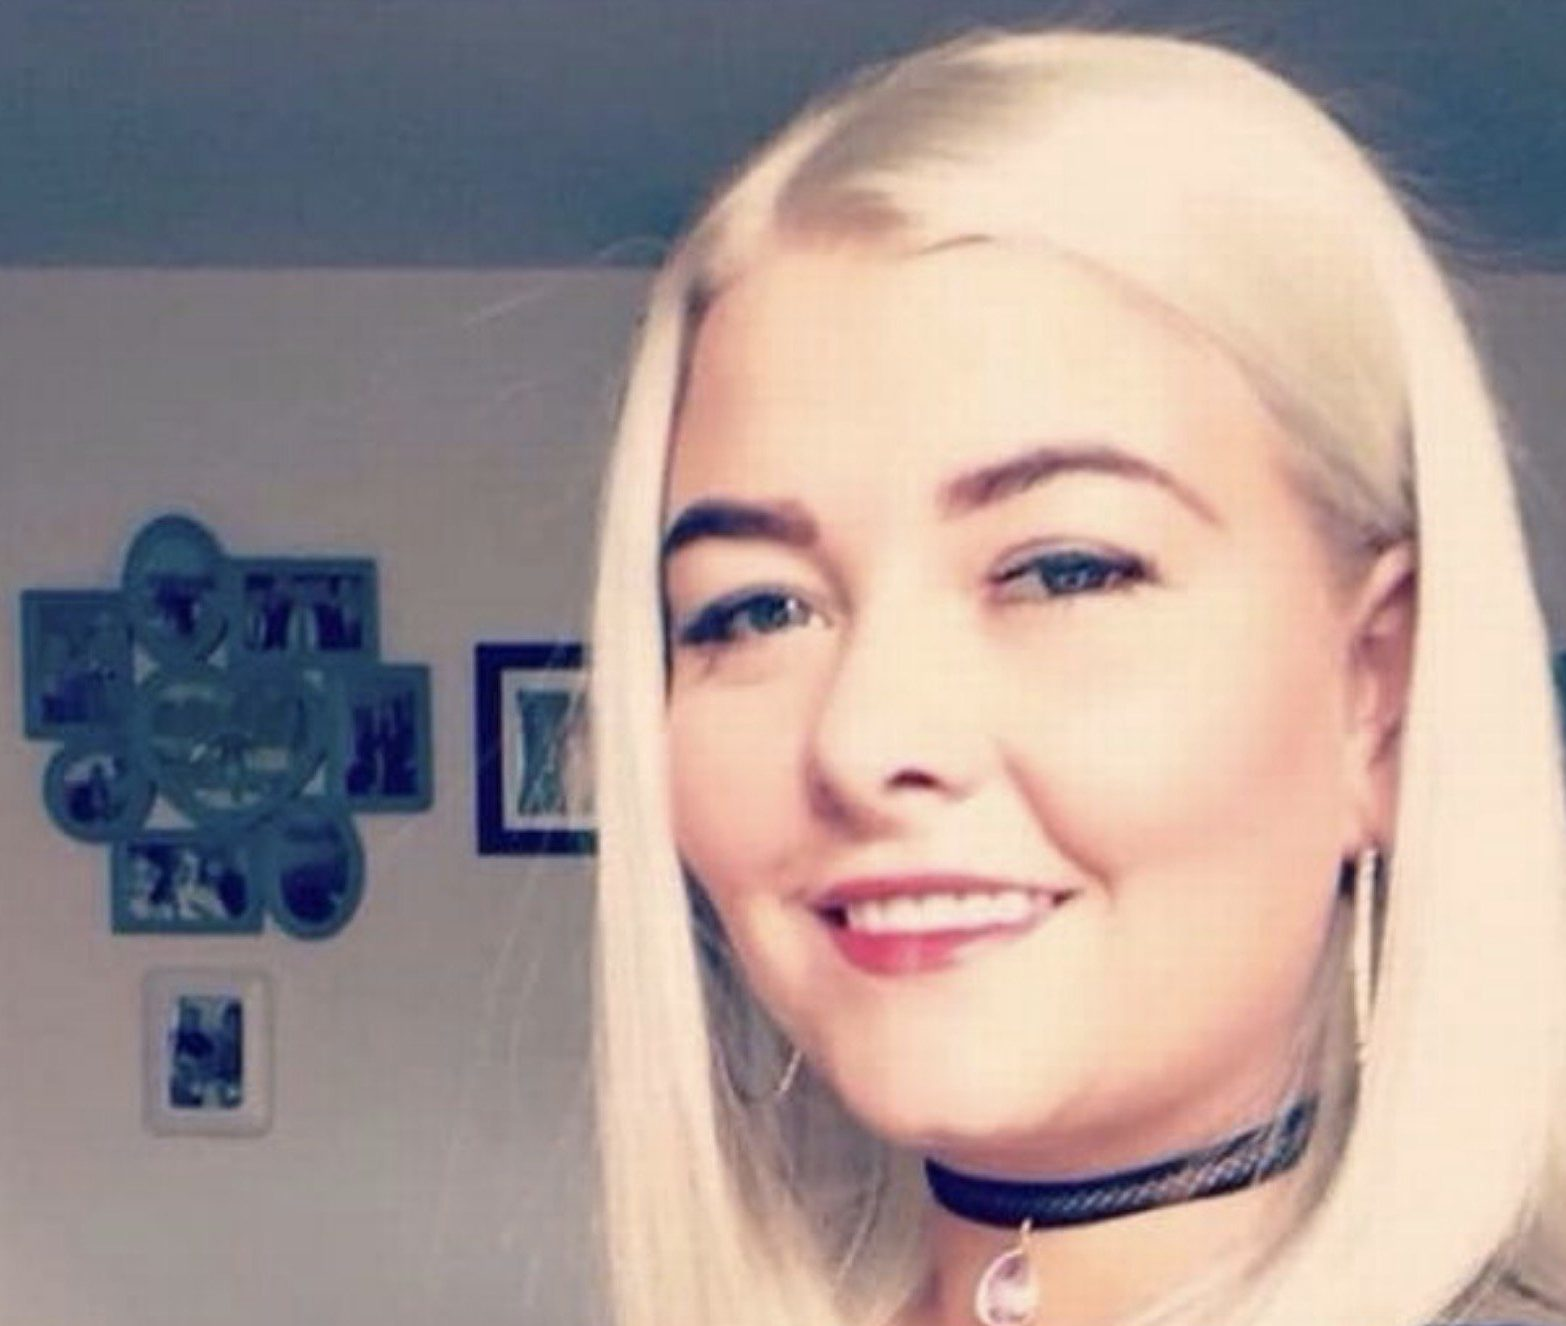 A woman had her teeth kicked out by her violent ex-boyfriend because 'she changed her Facebook profile picture'. Lois Ashton has shared pictures of her horrific injuries, after she was kicked so forcibly in the face, three of her front teeth were knocked out and her jaw broken. The 29-year-old, who now has to wear a partial denture, was attacked by ex-boyfriend Andrew McNair after a night out with friends. Credit: Liverpool Echo